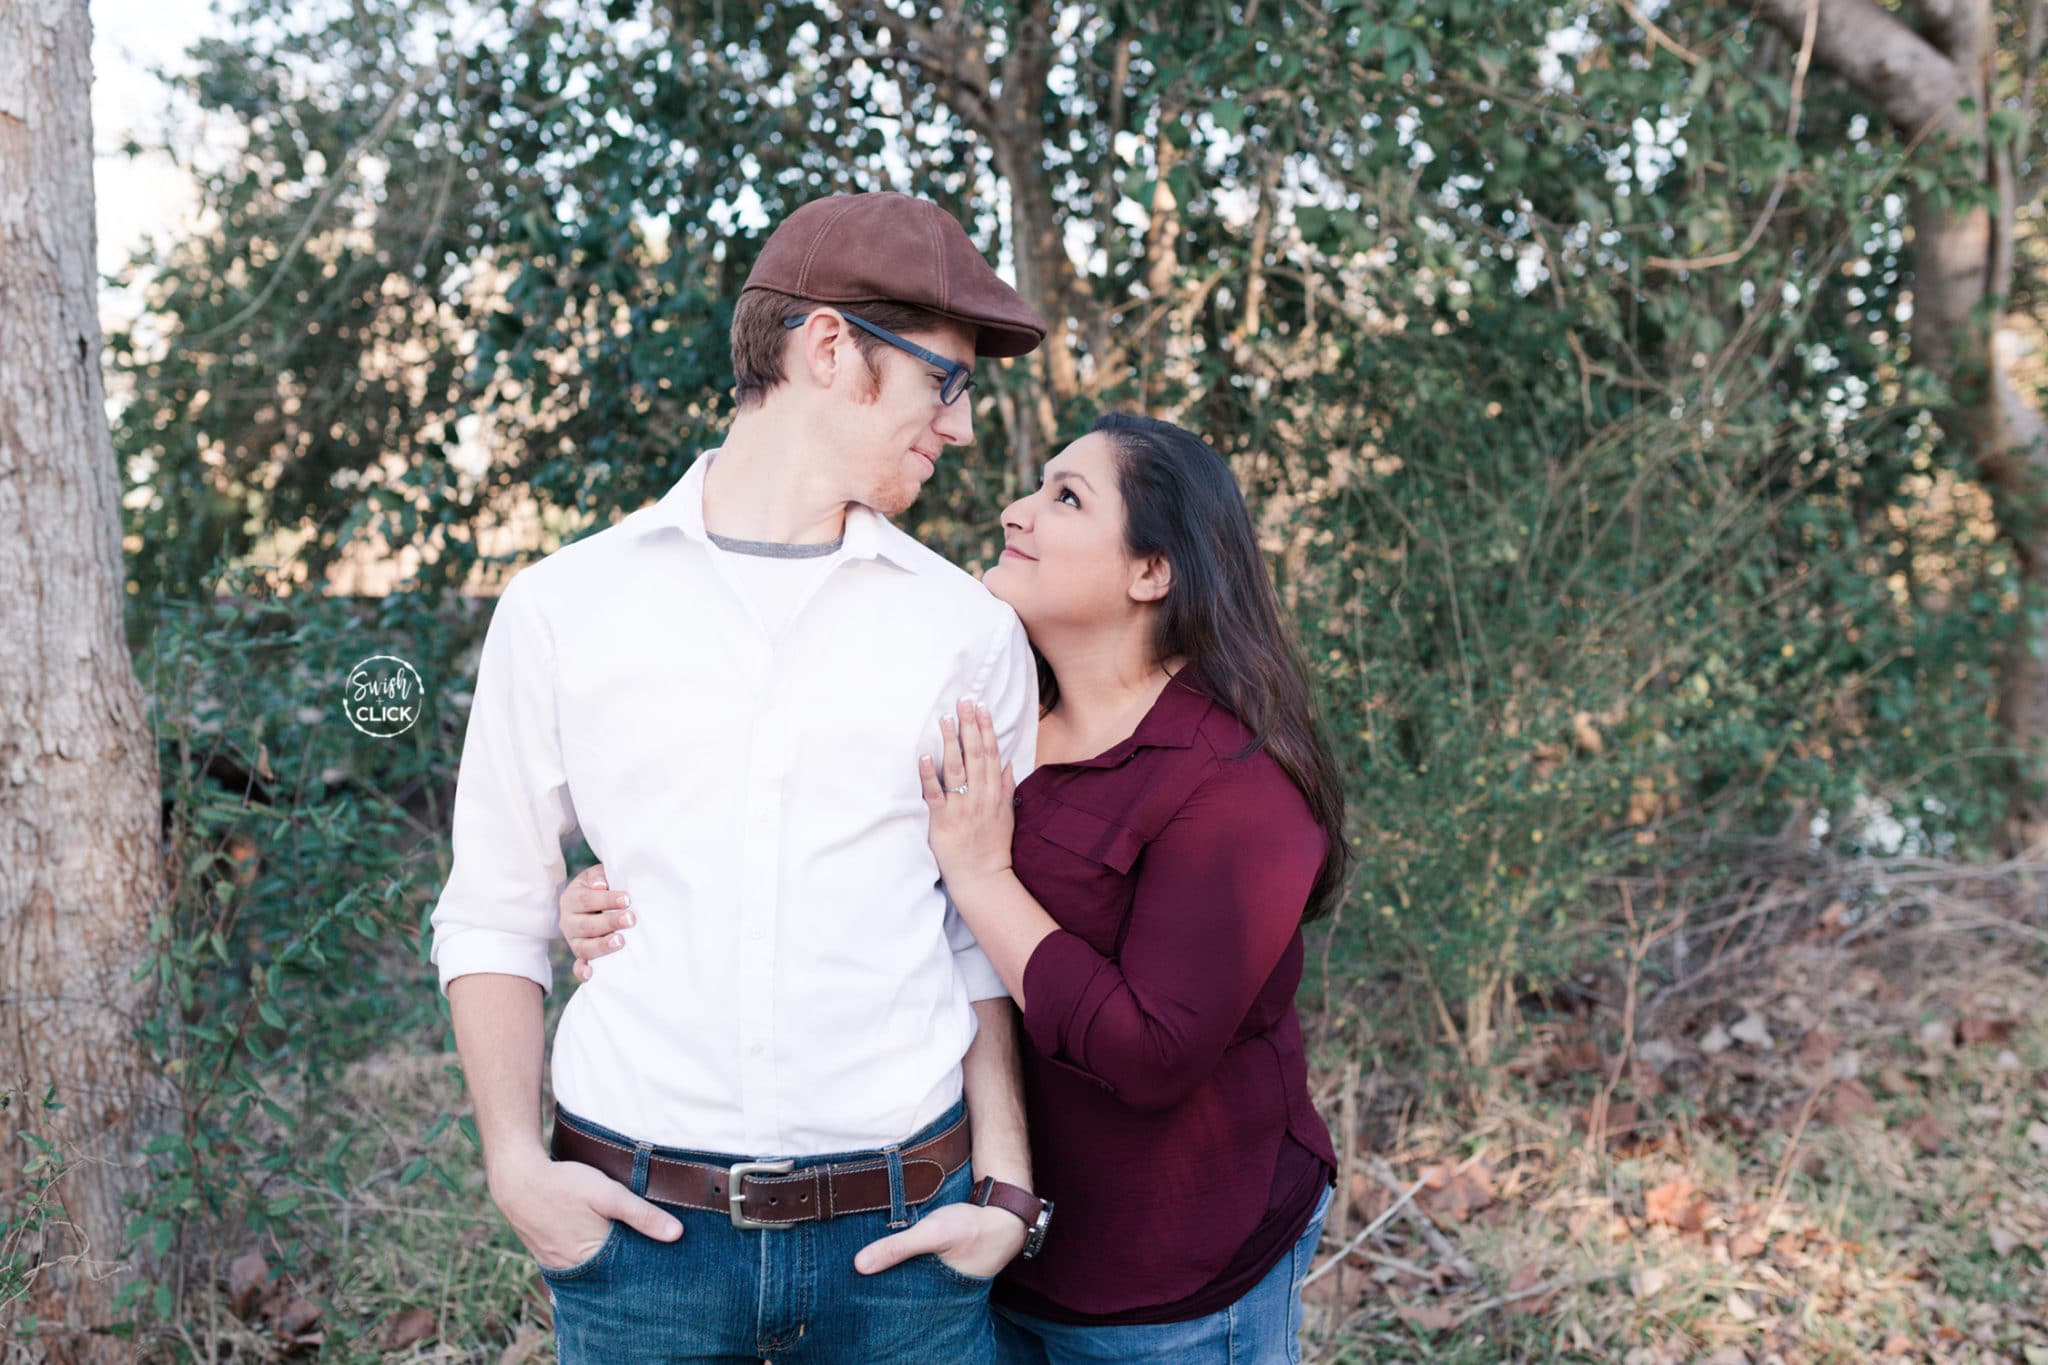 awesome engagement photos at a park in Houston Texas by Swish and Click